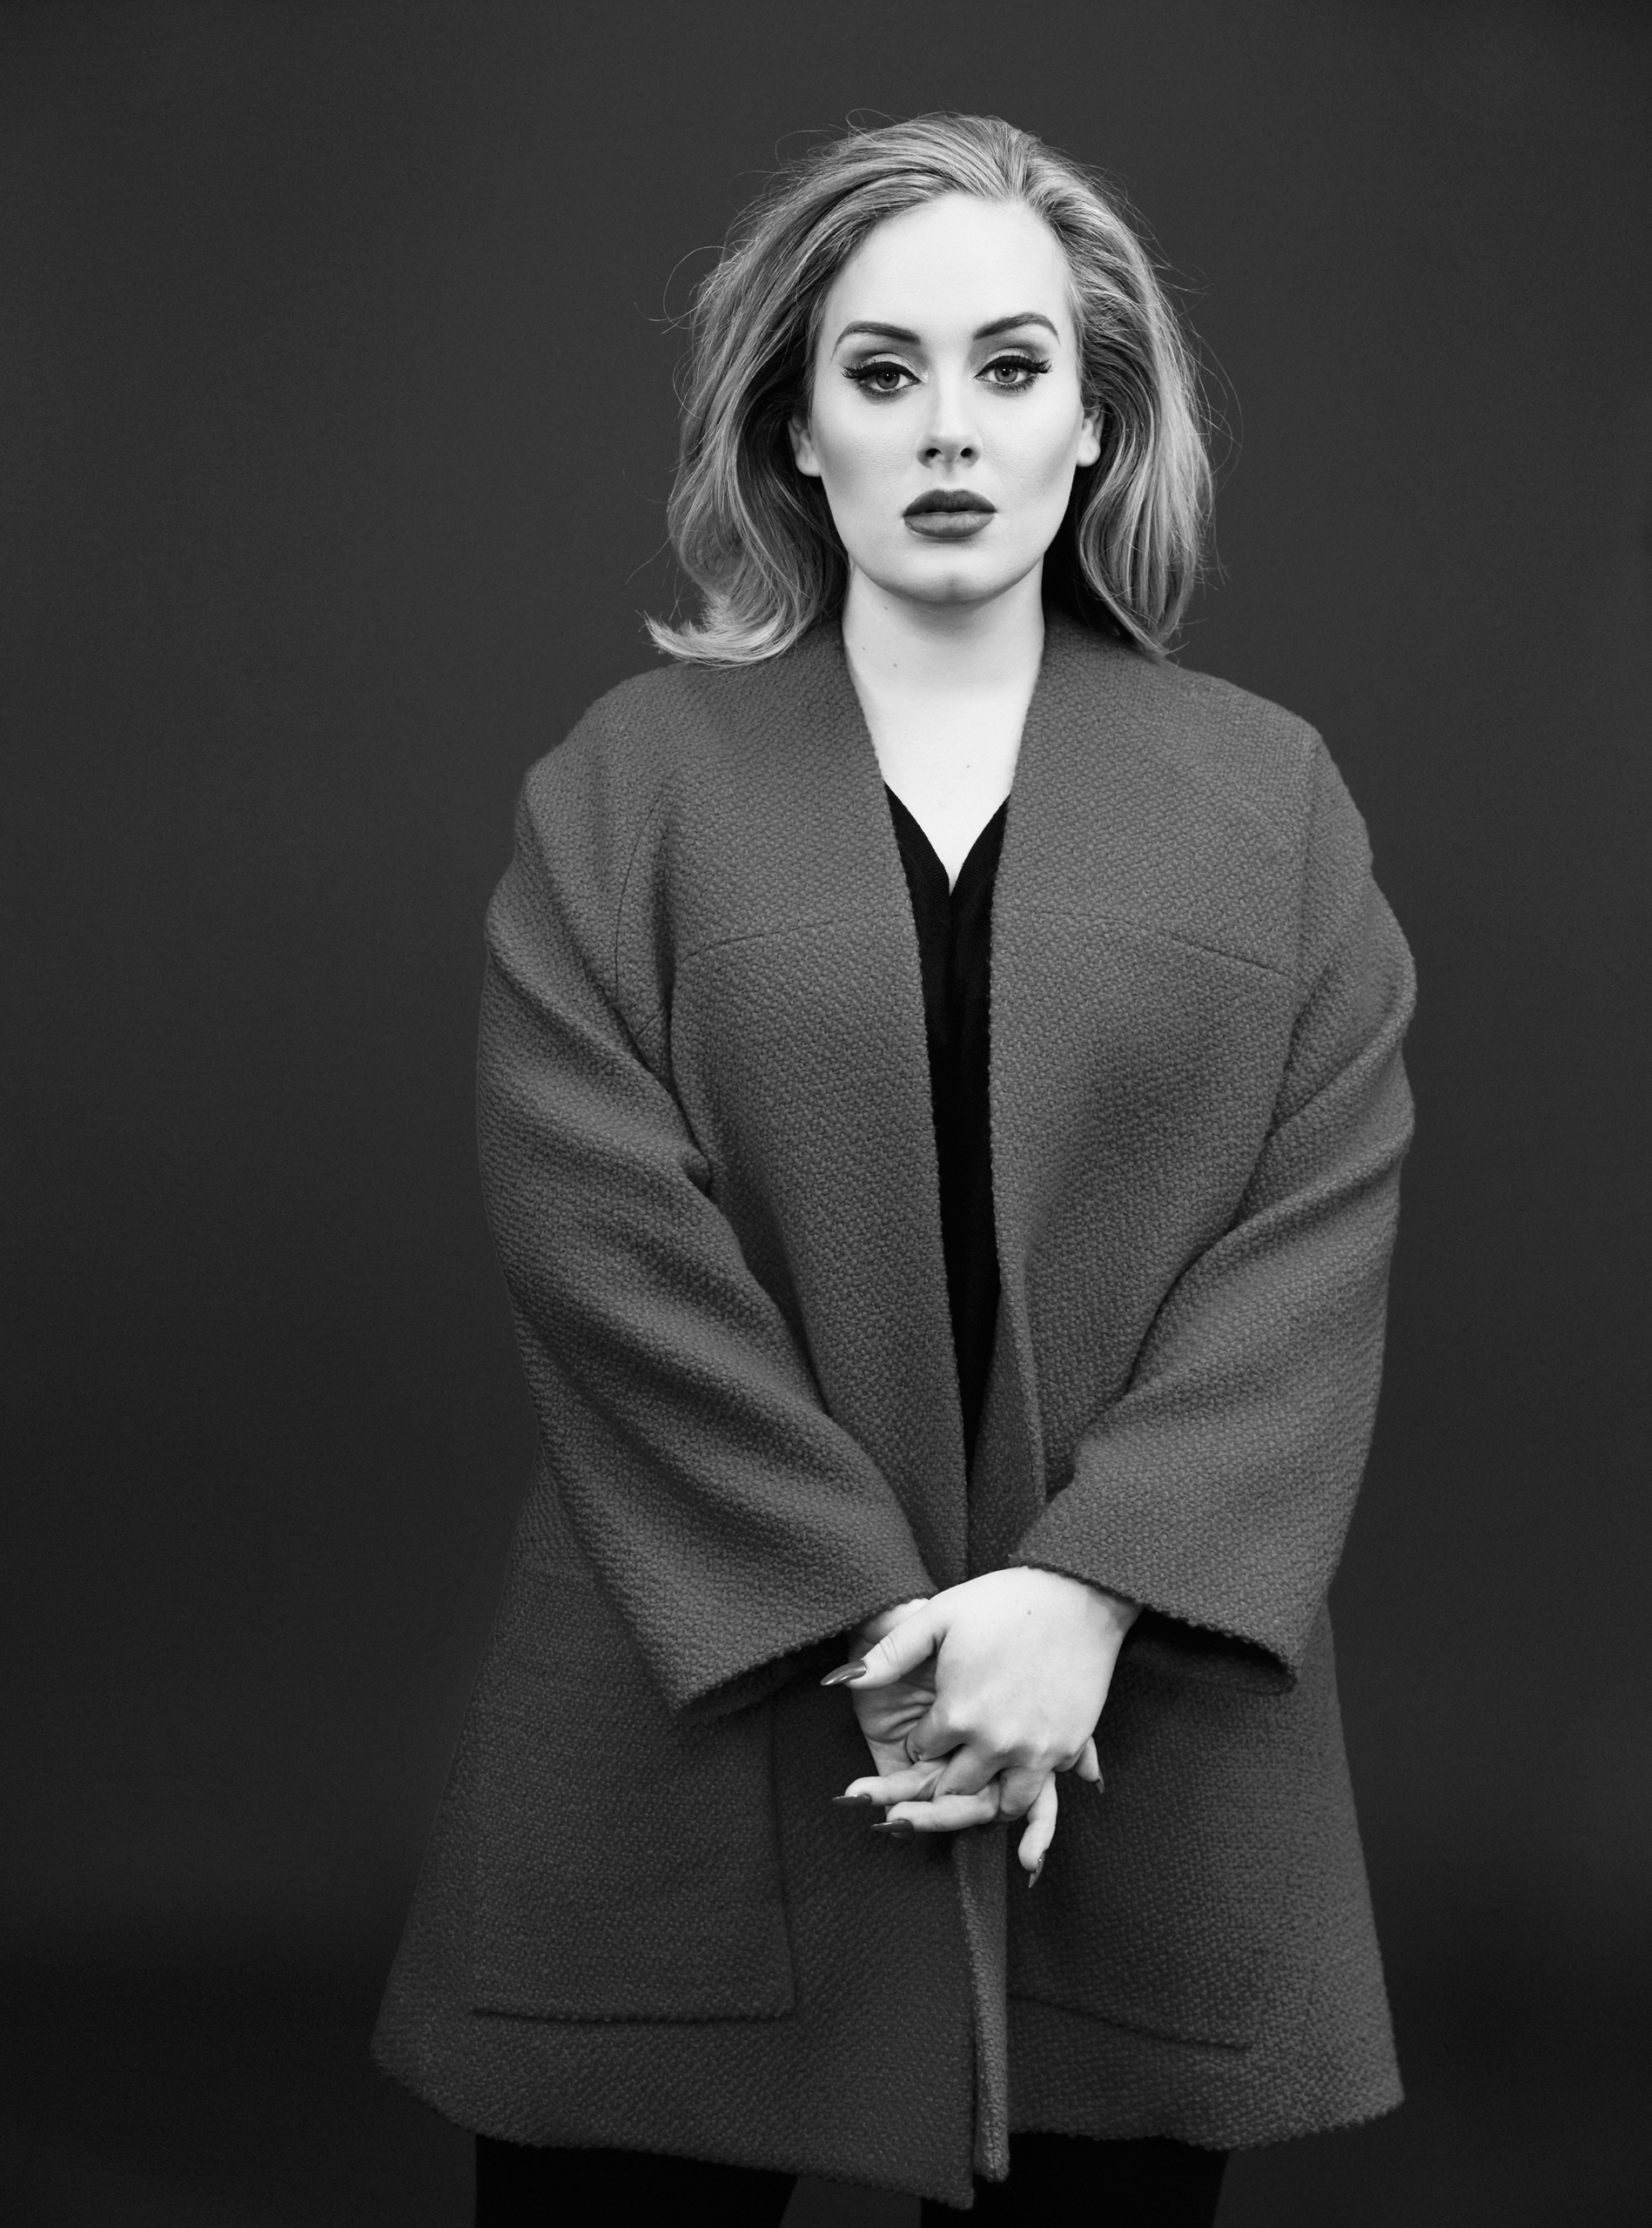 Adele, a voice for every generation